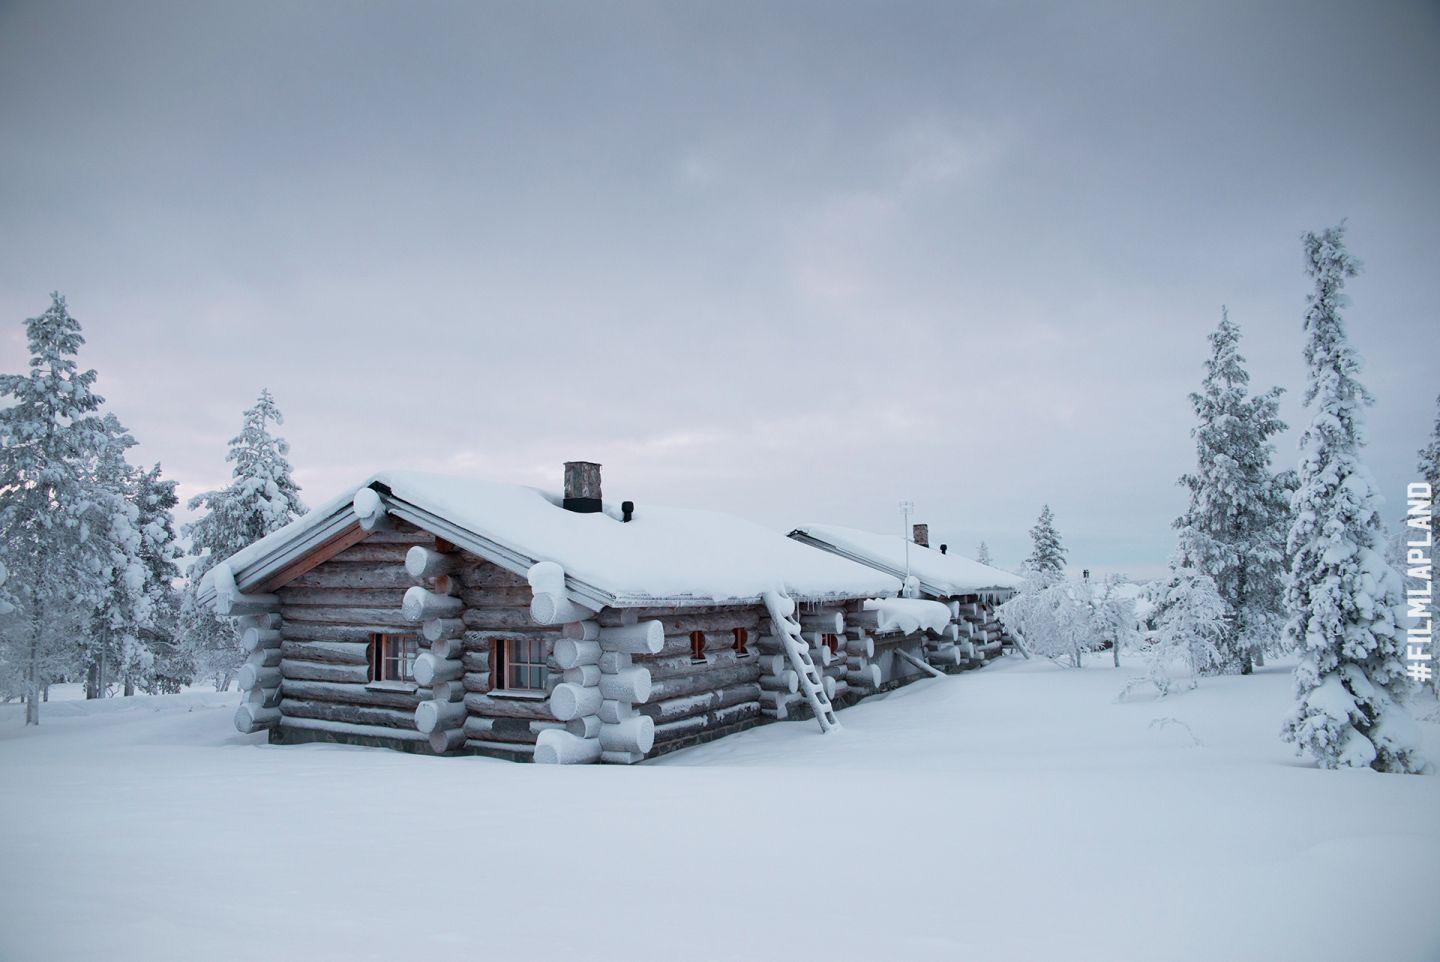 Snowy log cabin in Inari, Finland